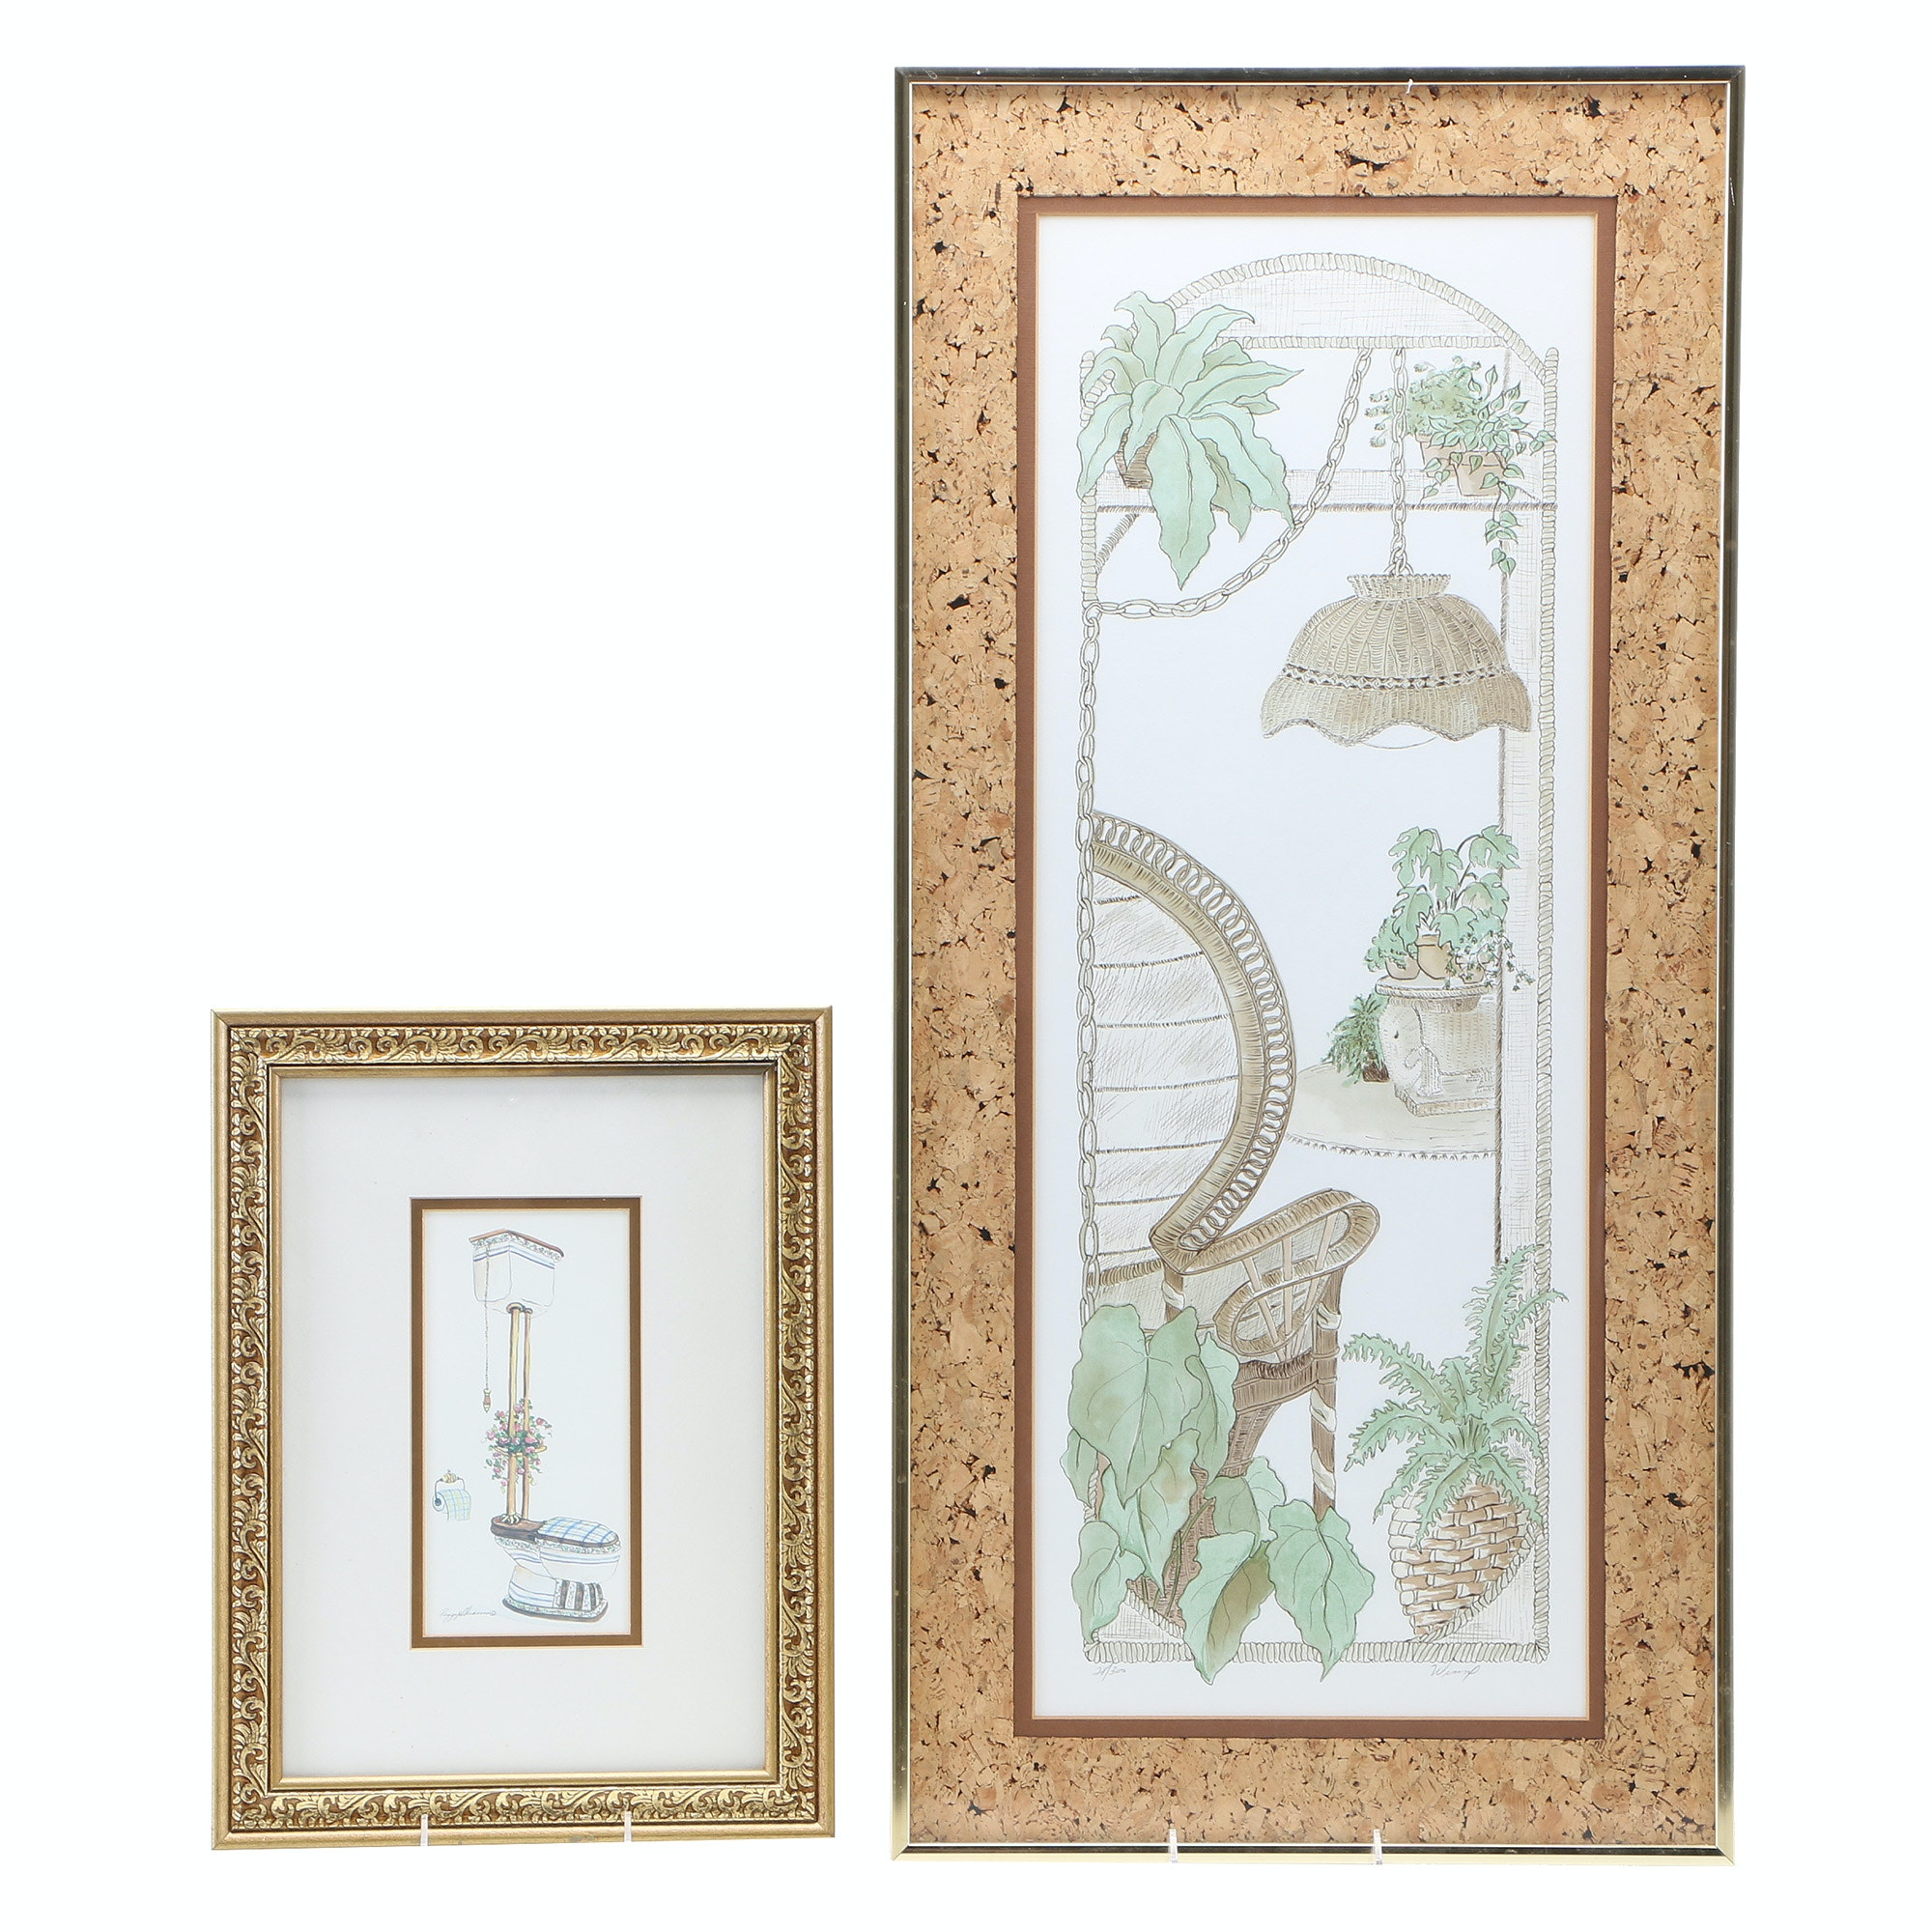 Two Offset Lithograph Prints of Home Interiors